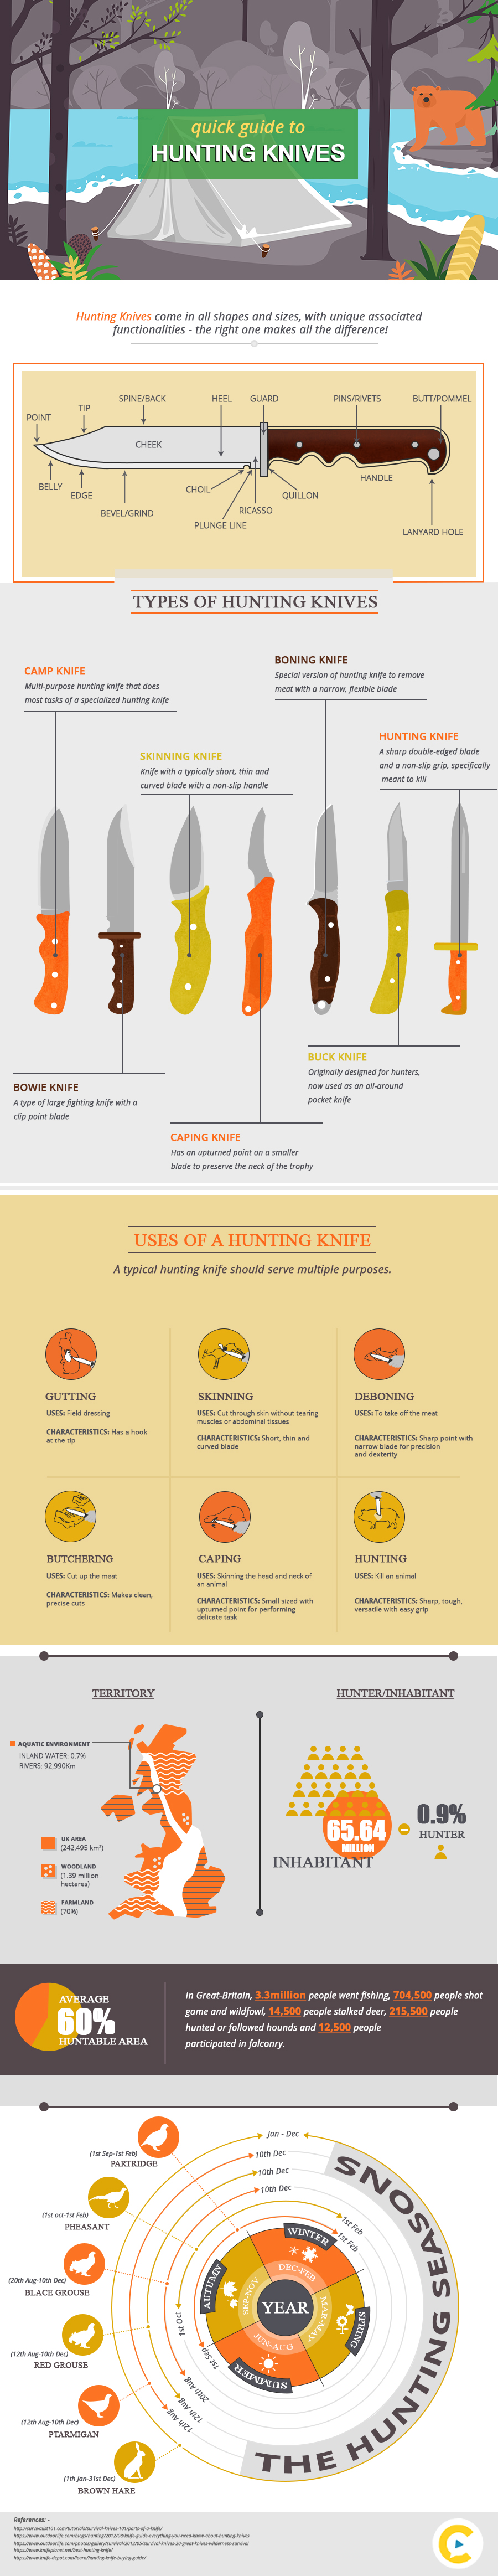 Hunting Knives Infographic